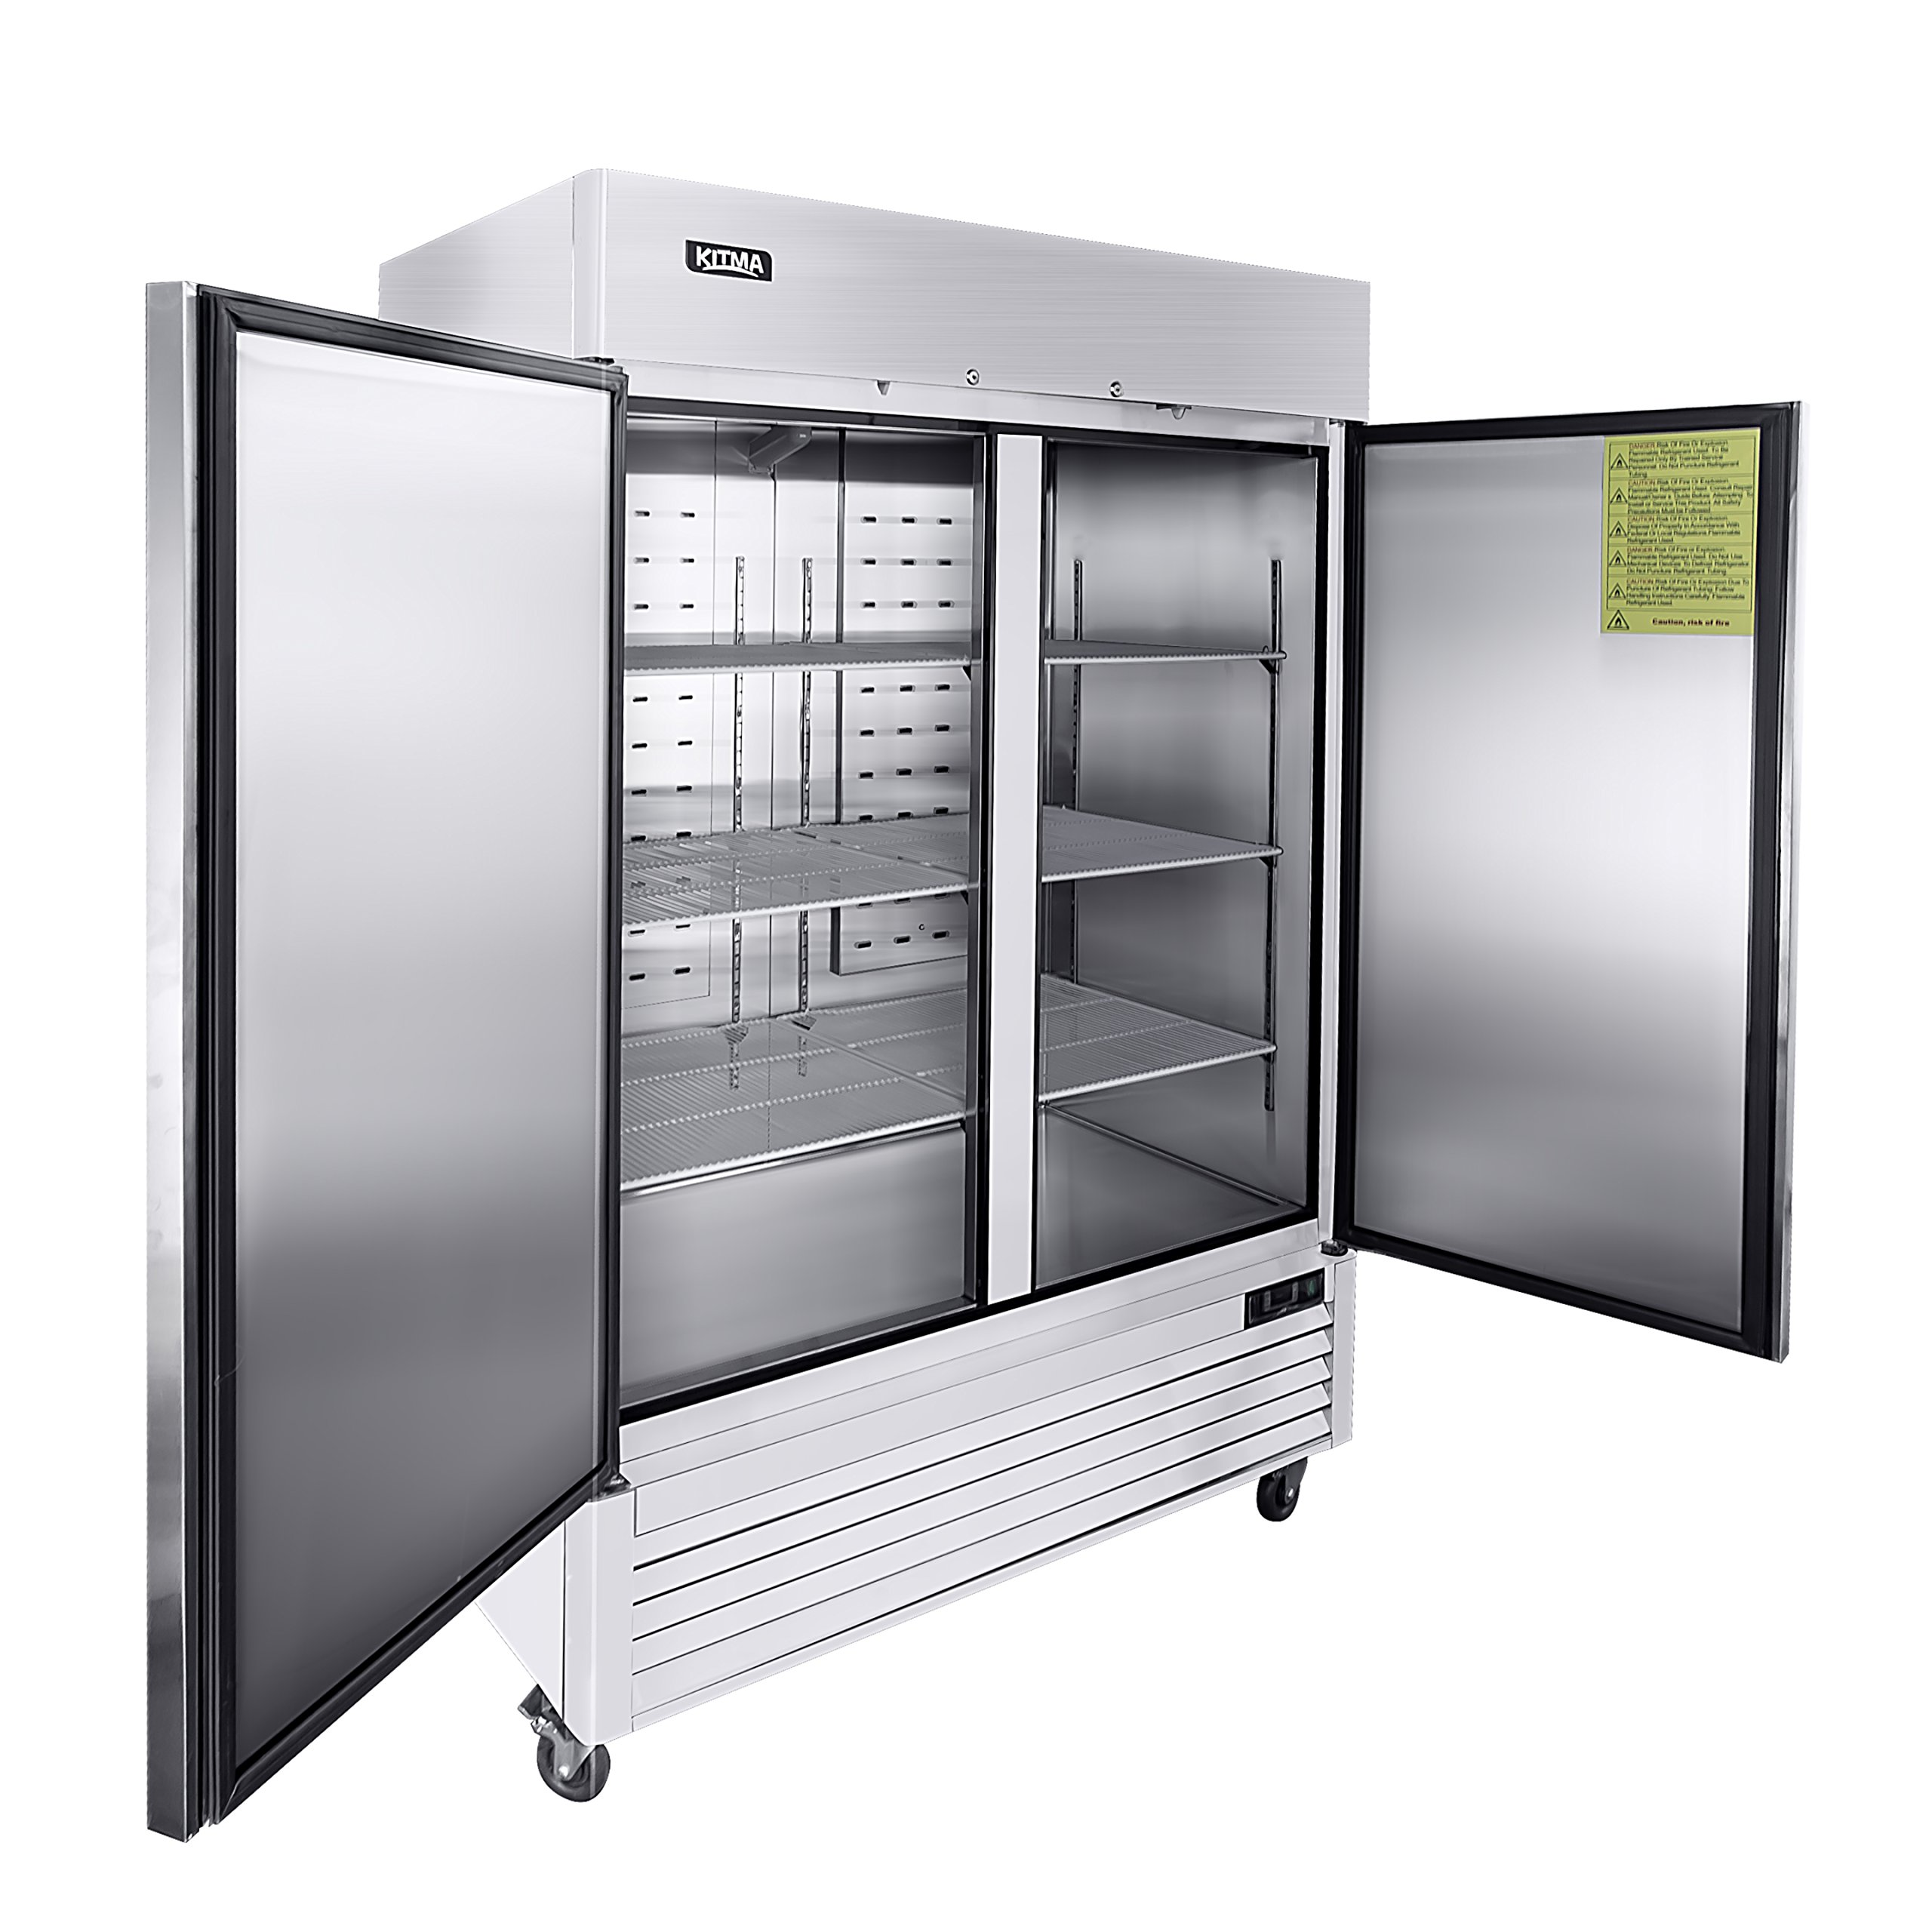 54'' Two Section Solid Door Reach-in Commercial Refrigerator - KITMA 49 cu. ft Side by Side Stainless Steel Upright Fridge for Restaurant by KITMA